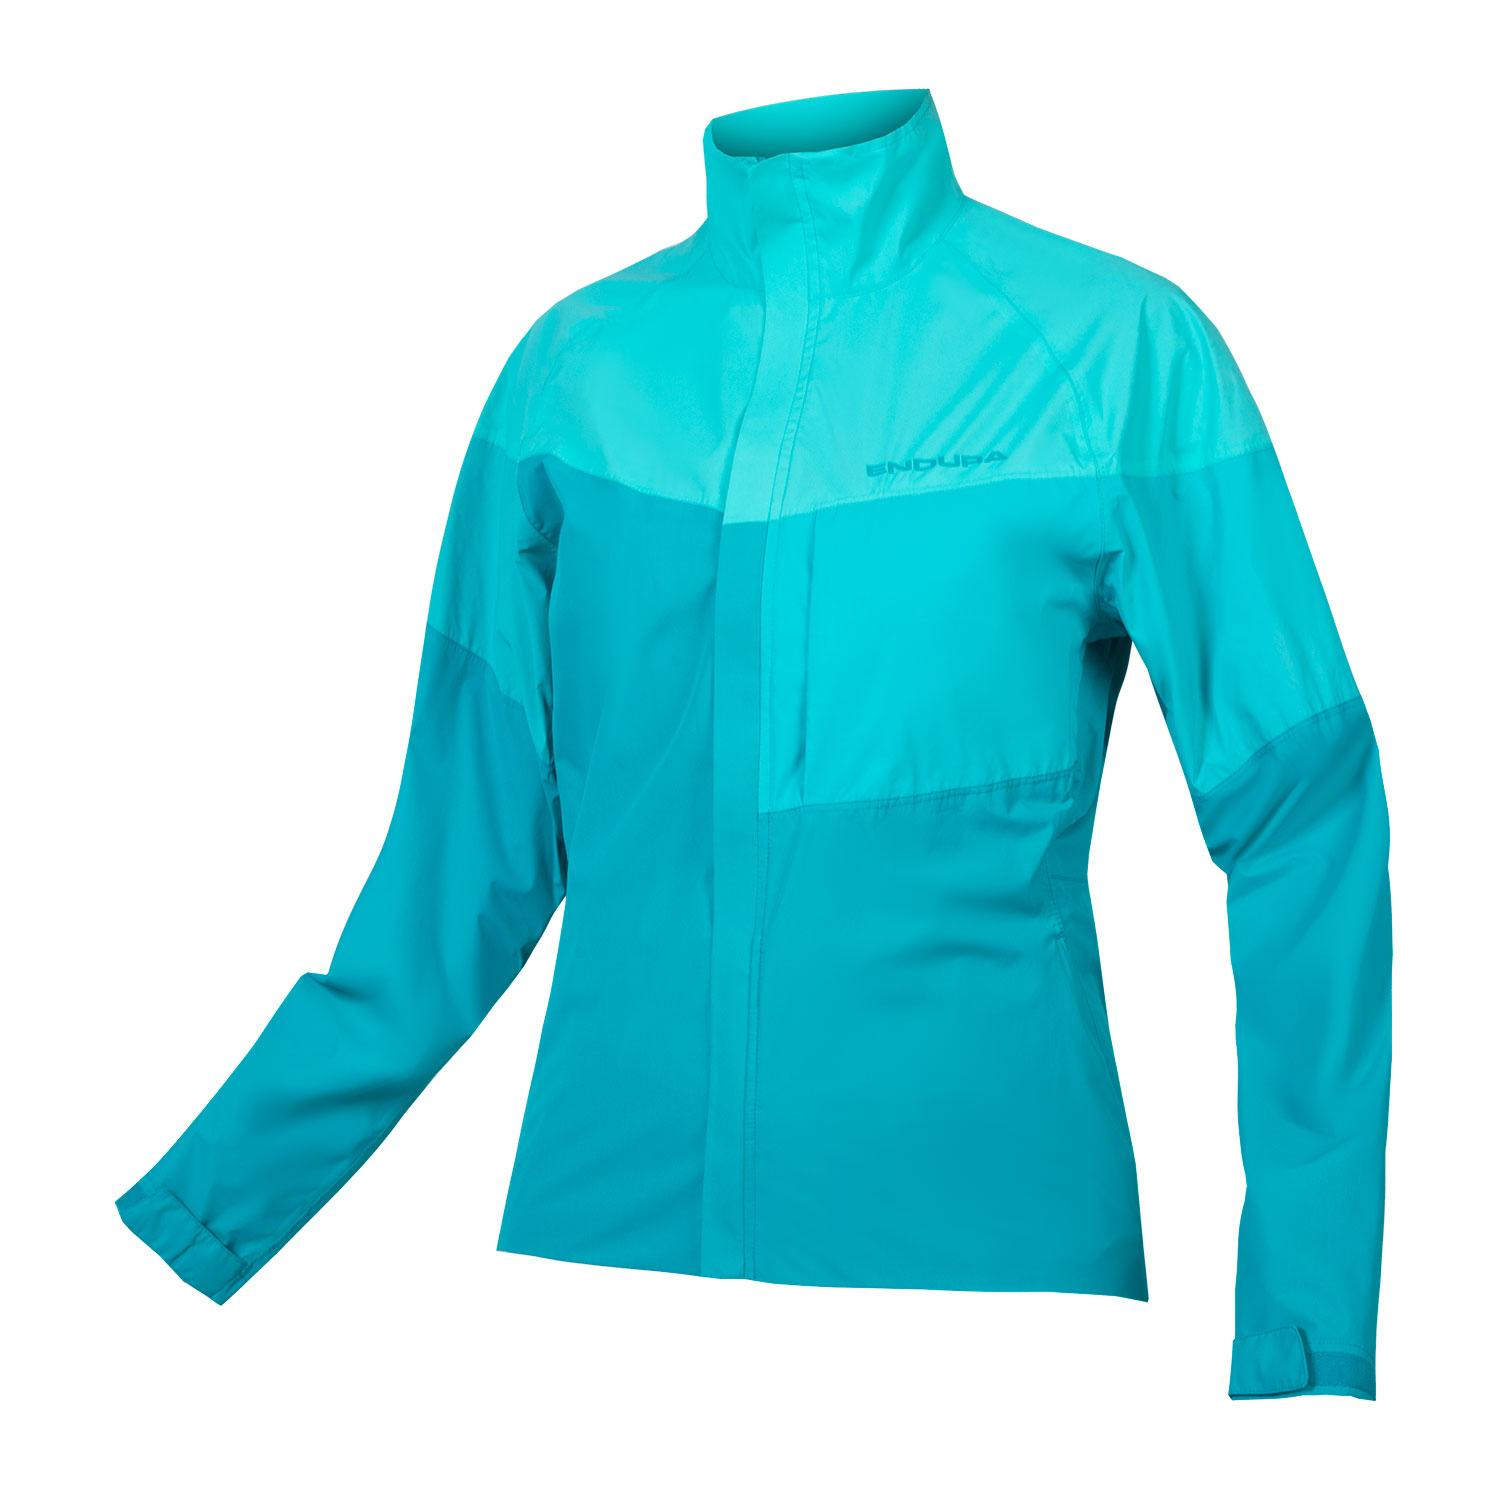 Endura Regen en Windjack Dames Blauw - Womens Urban Luminite Jacket II Oceaan blauw